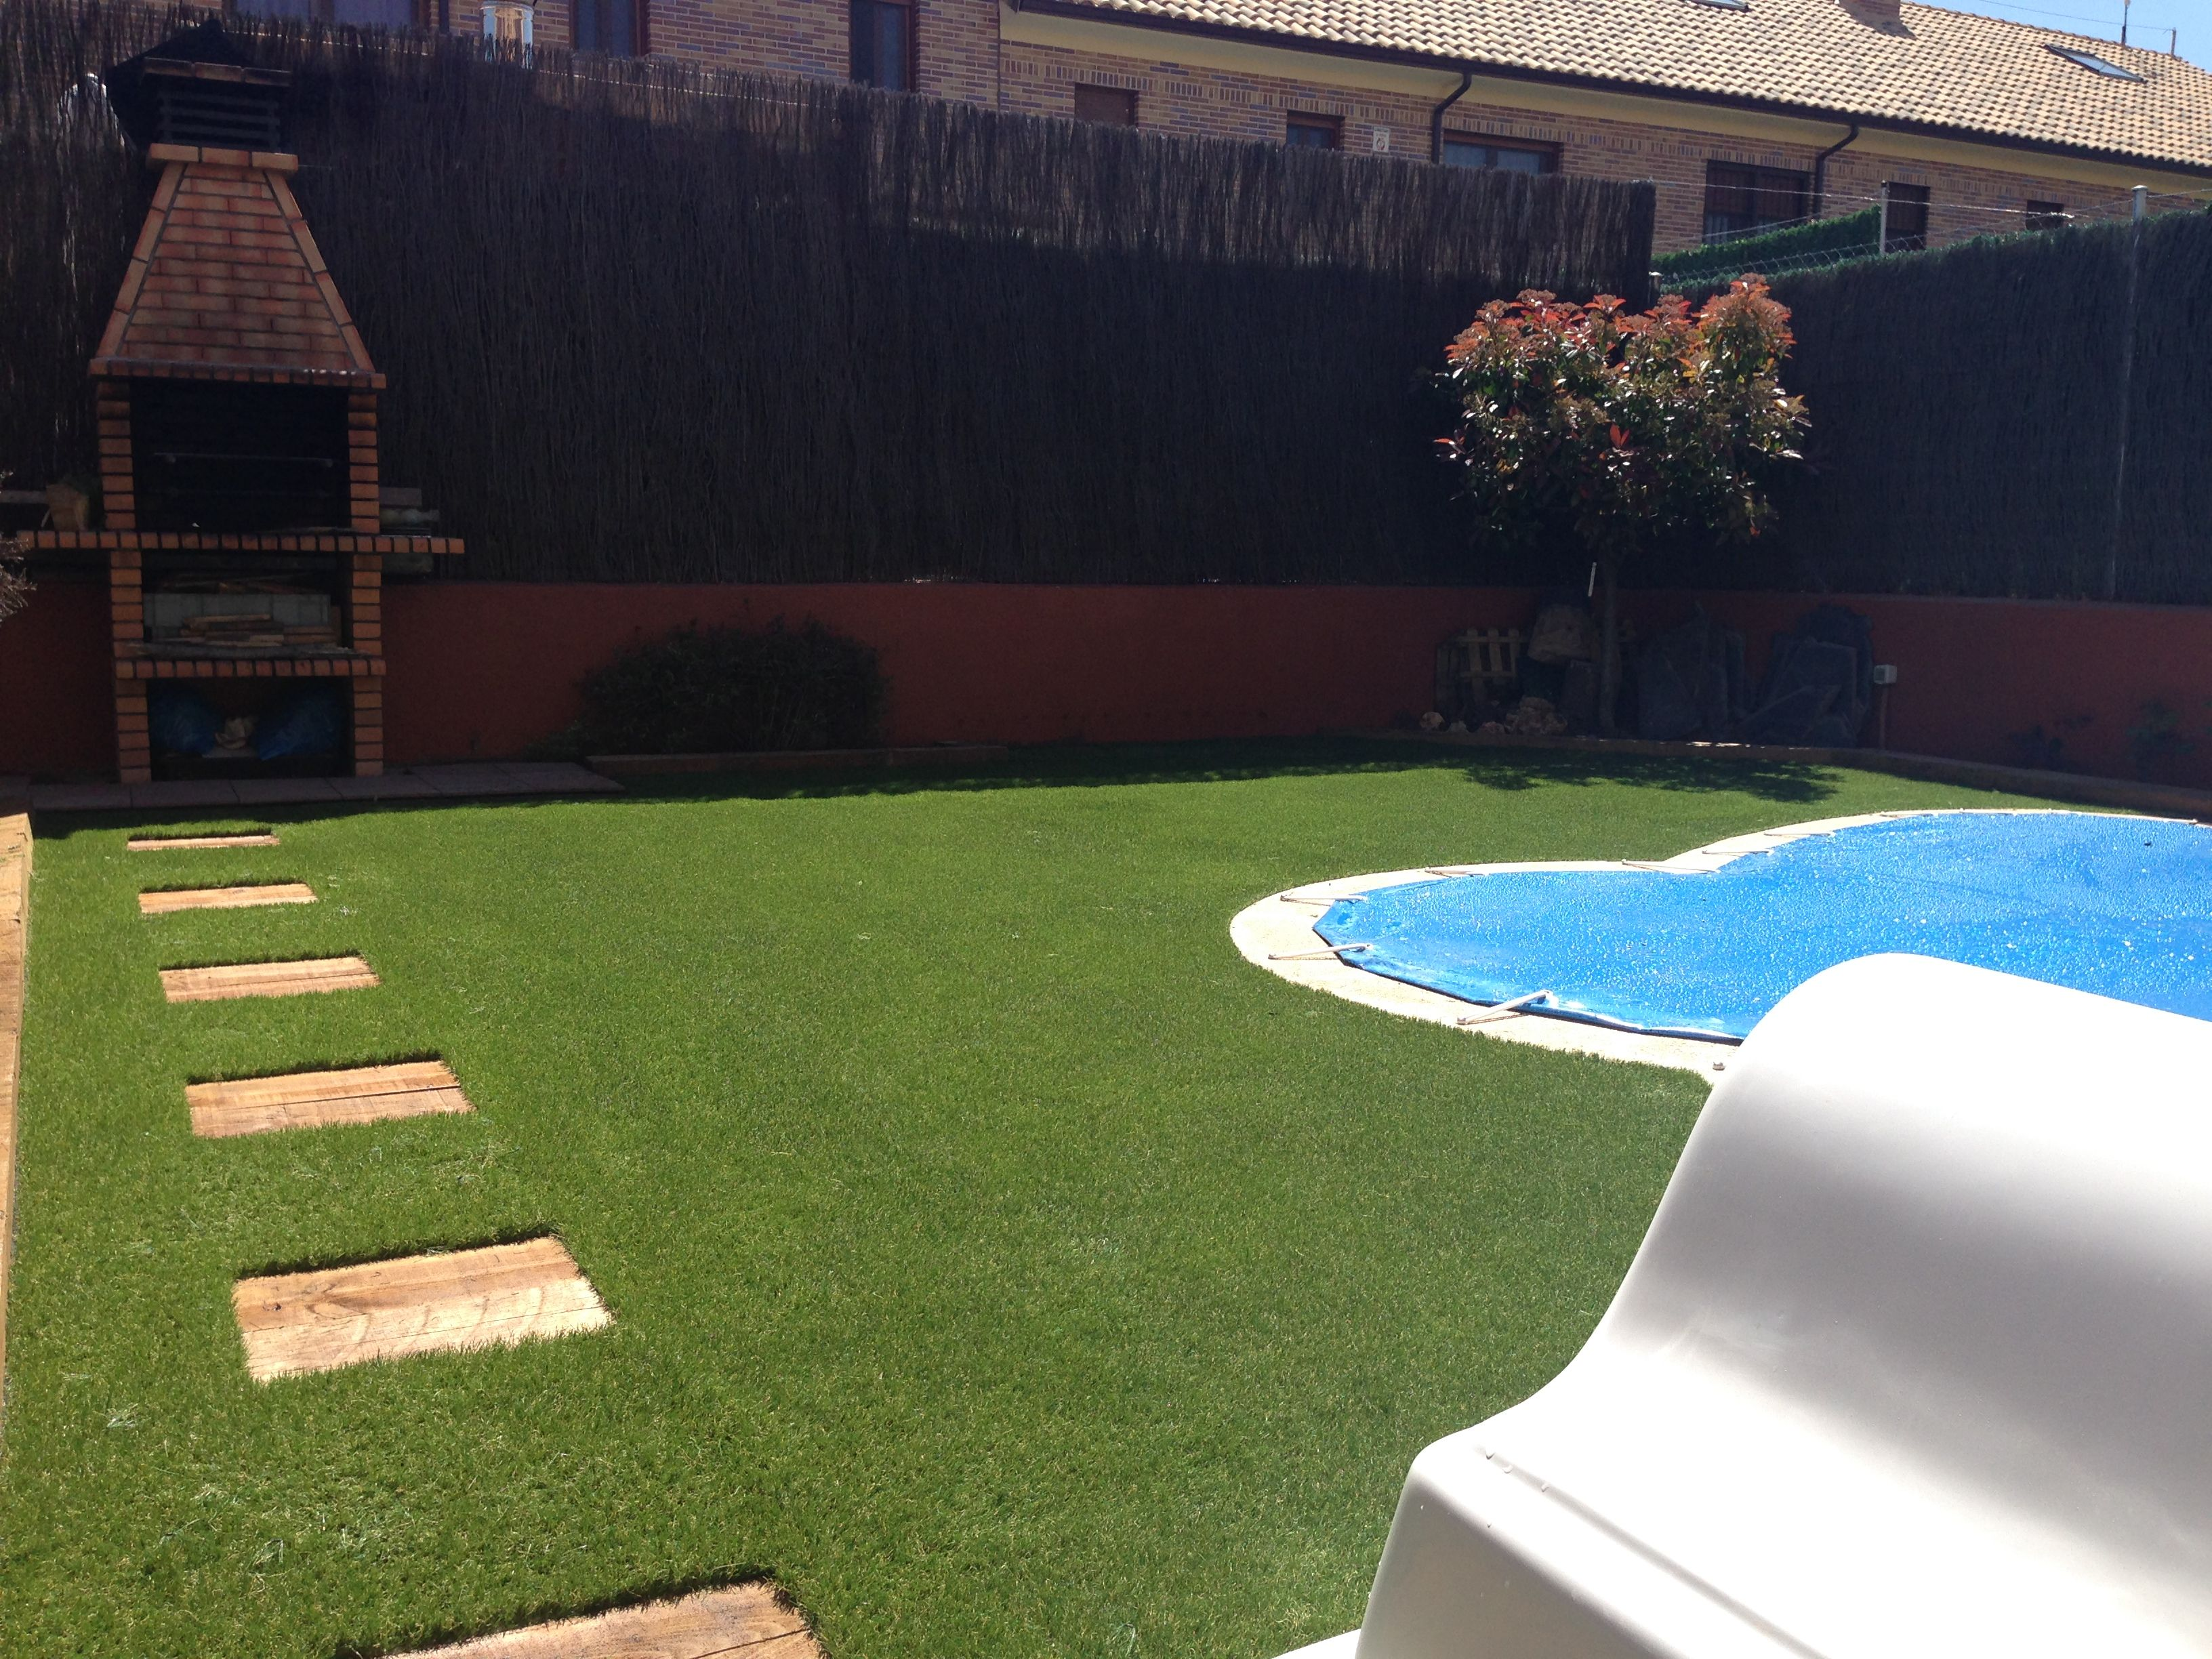 Proyecto de jardineria integral de allgrass incluye - Cesped artificial tarkett ...